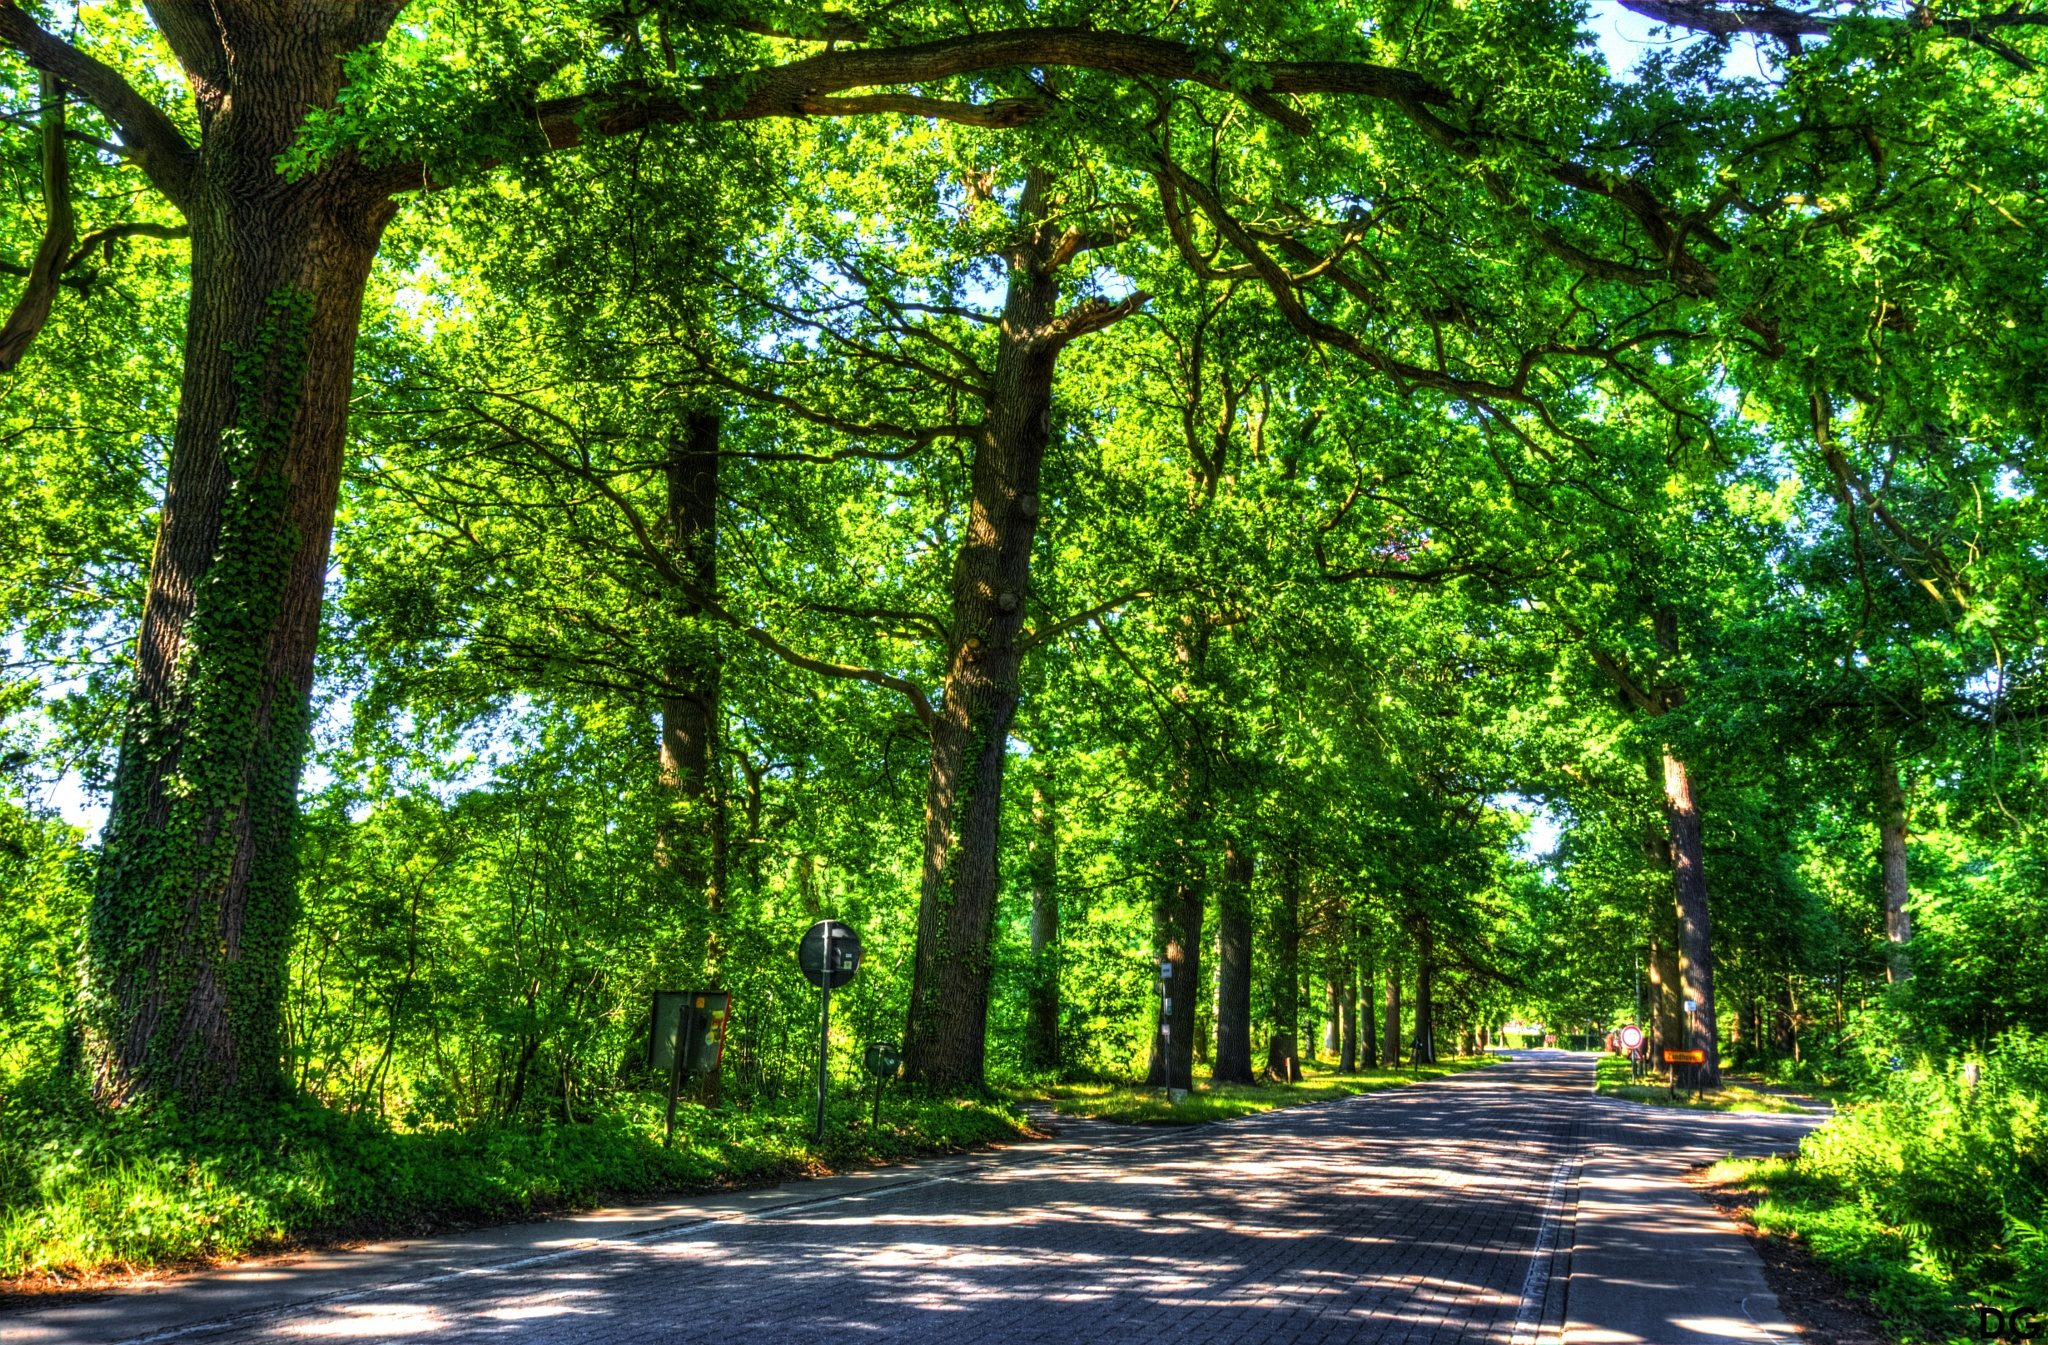 Road I. by Dirk Gonthier